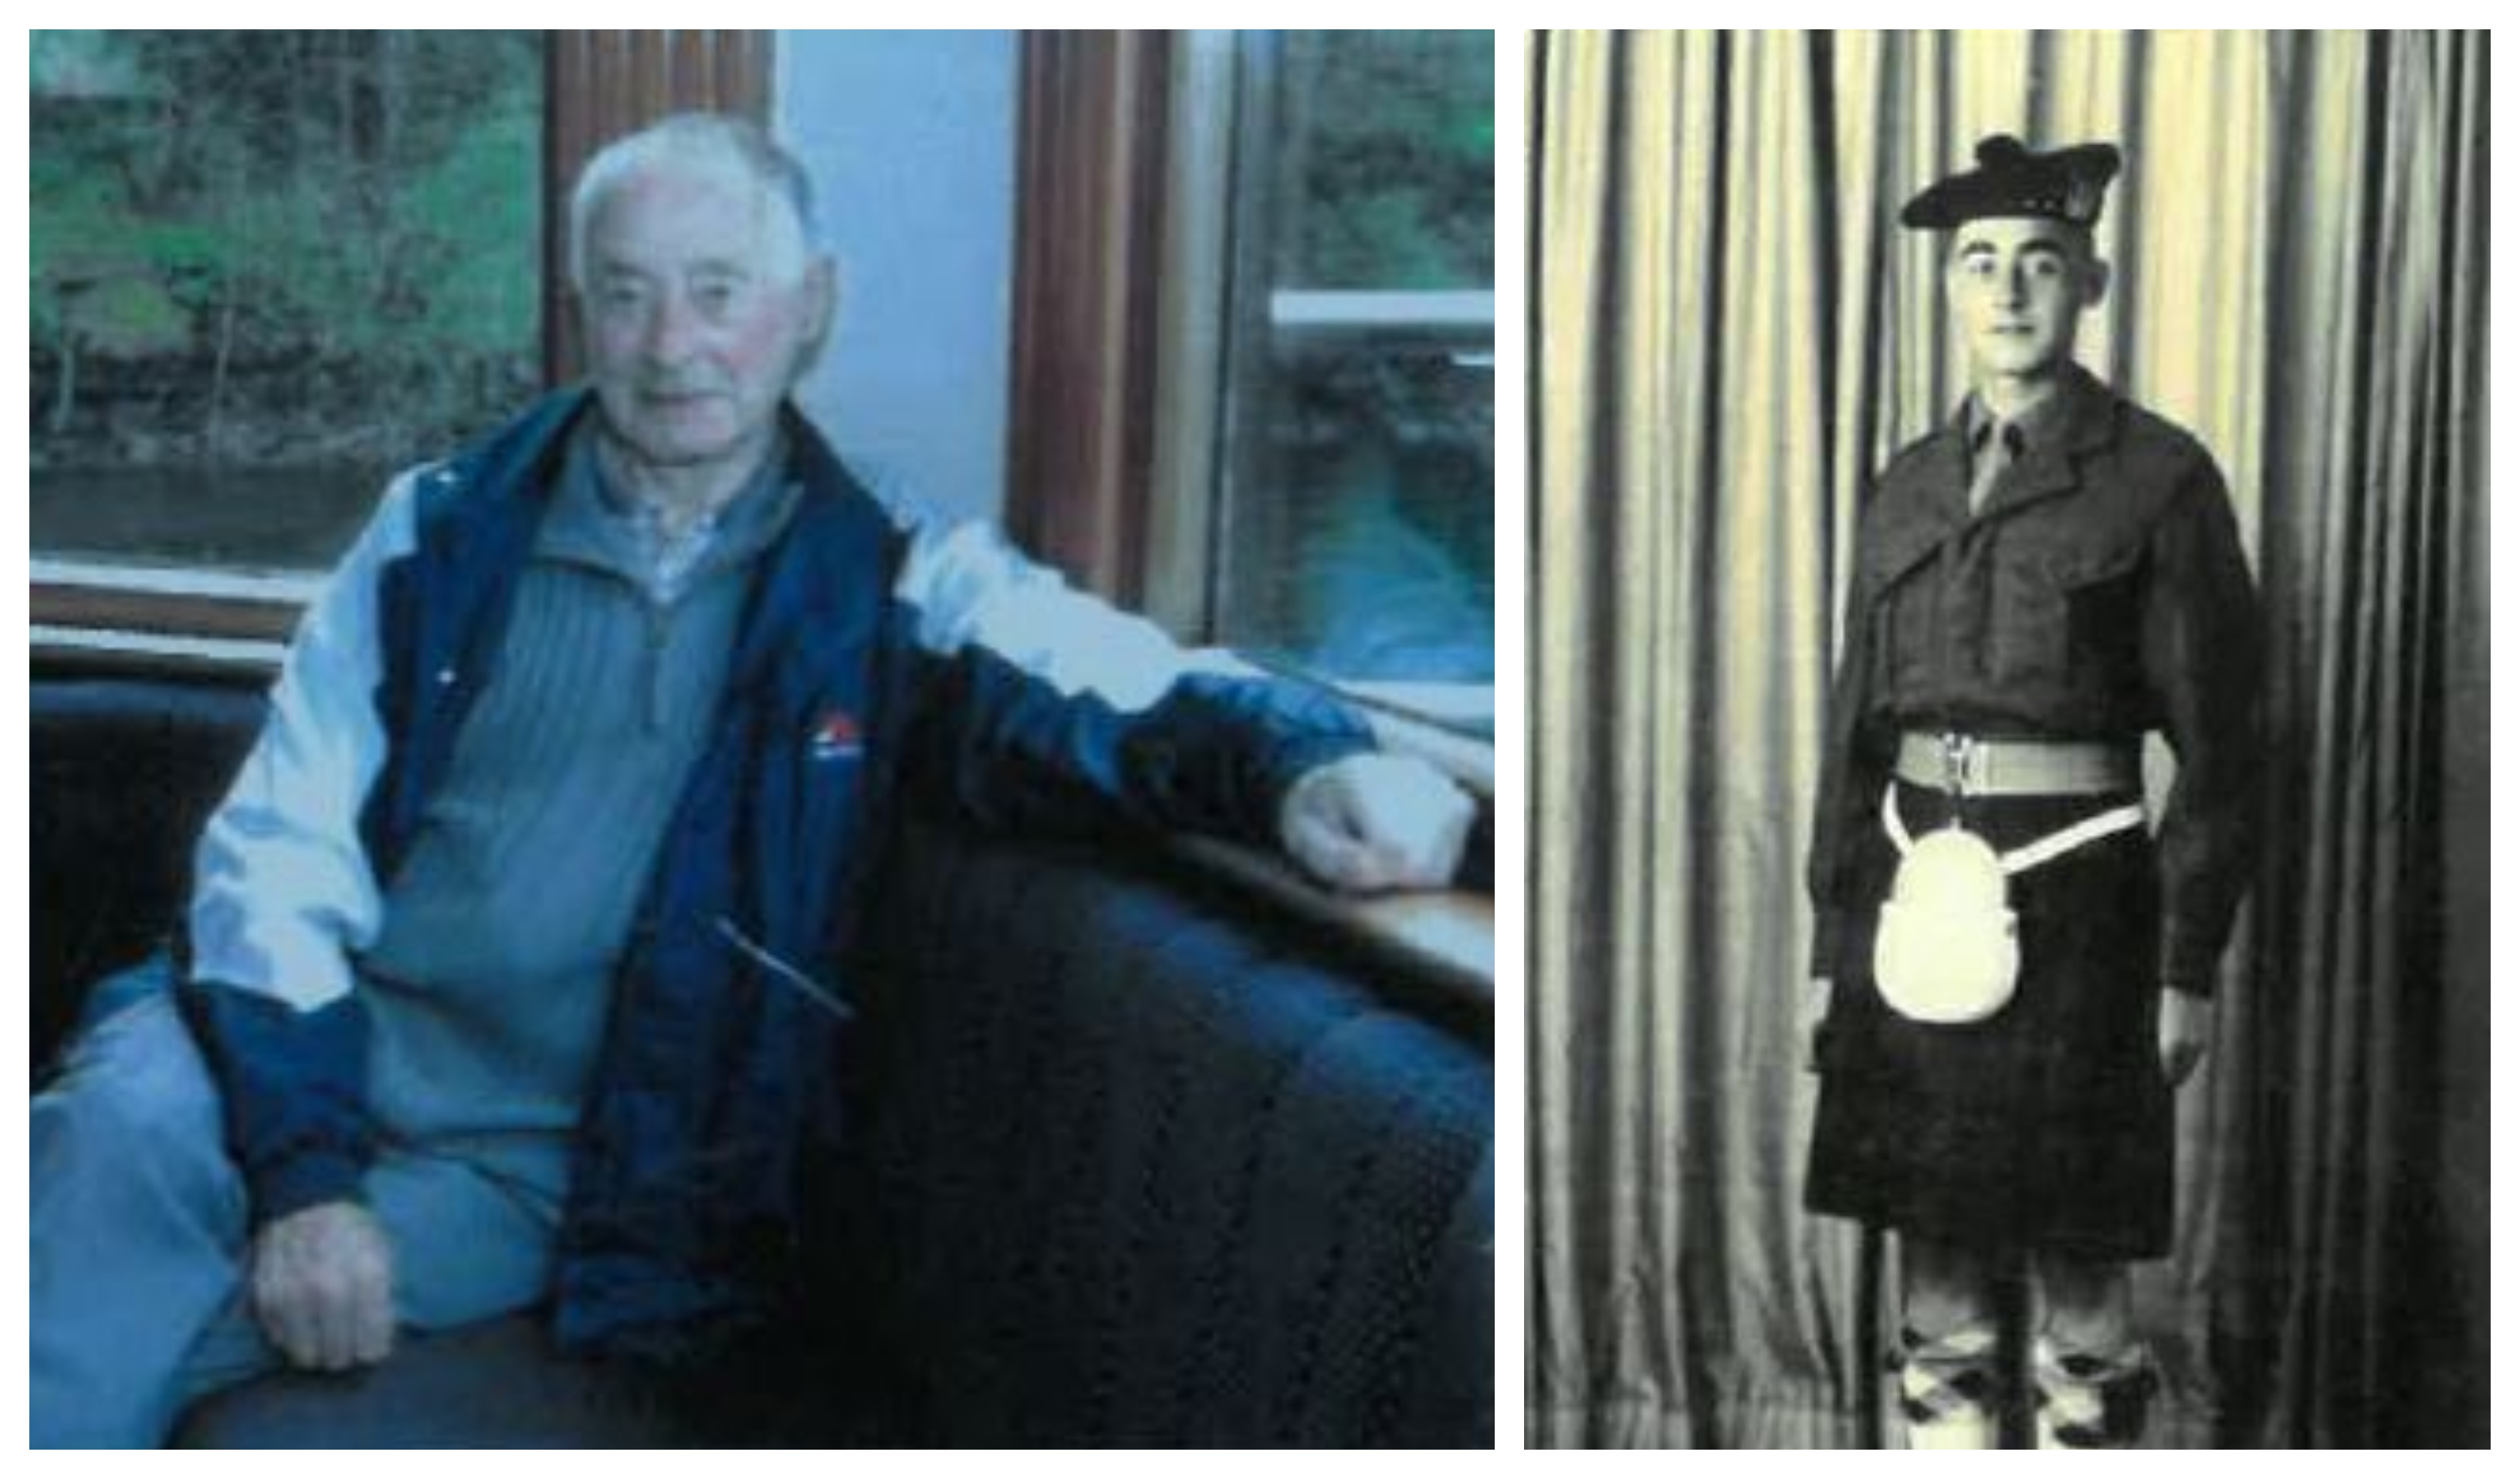 Community stalwart Ronald Duguid, who has died aged 83